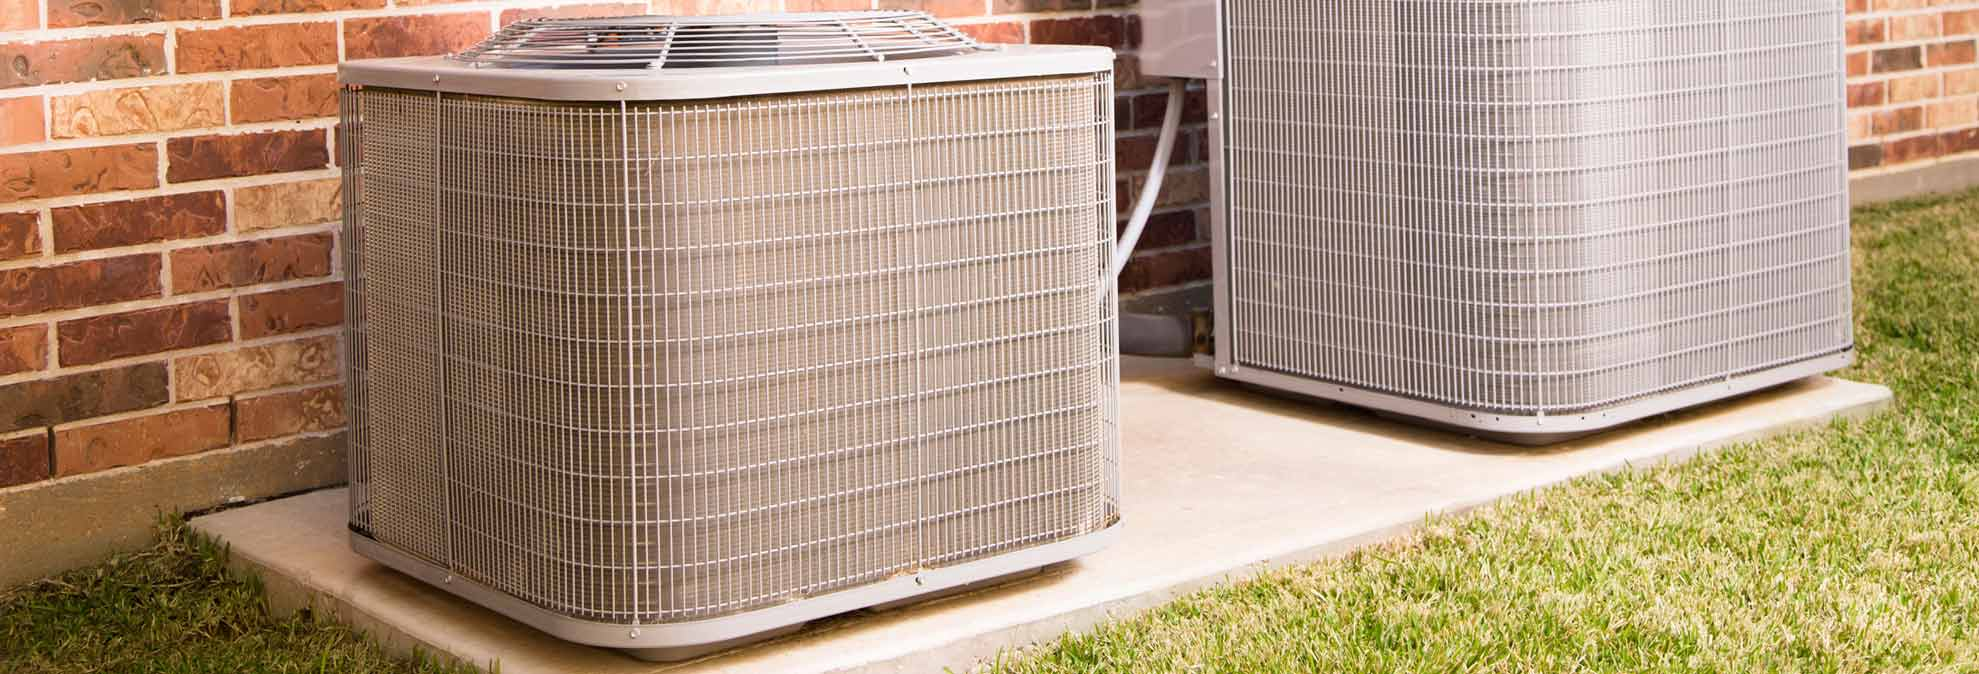 Best Central Air Conditioning Buying Guide Consumer Reports Wiring Diagram Heating Fridge Hvac Handler